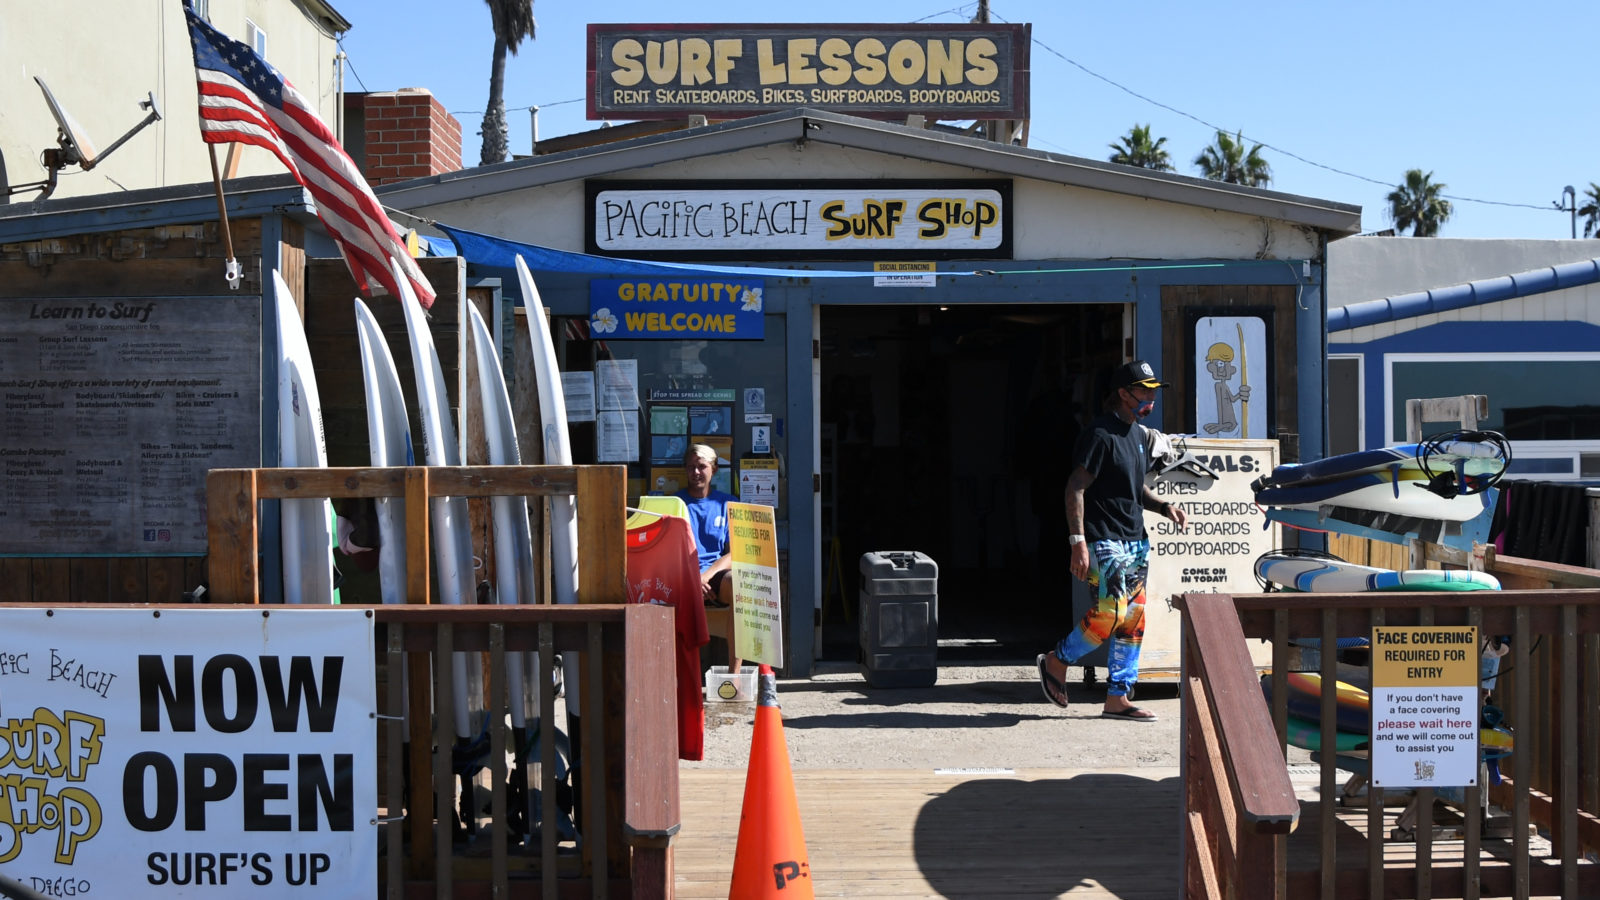 Pacific Beach Surf Shop and San Diego Surf Lessons